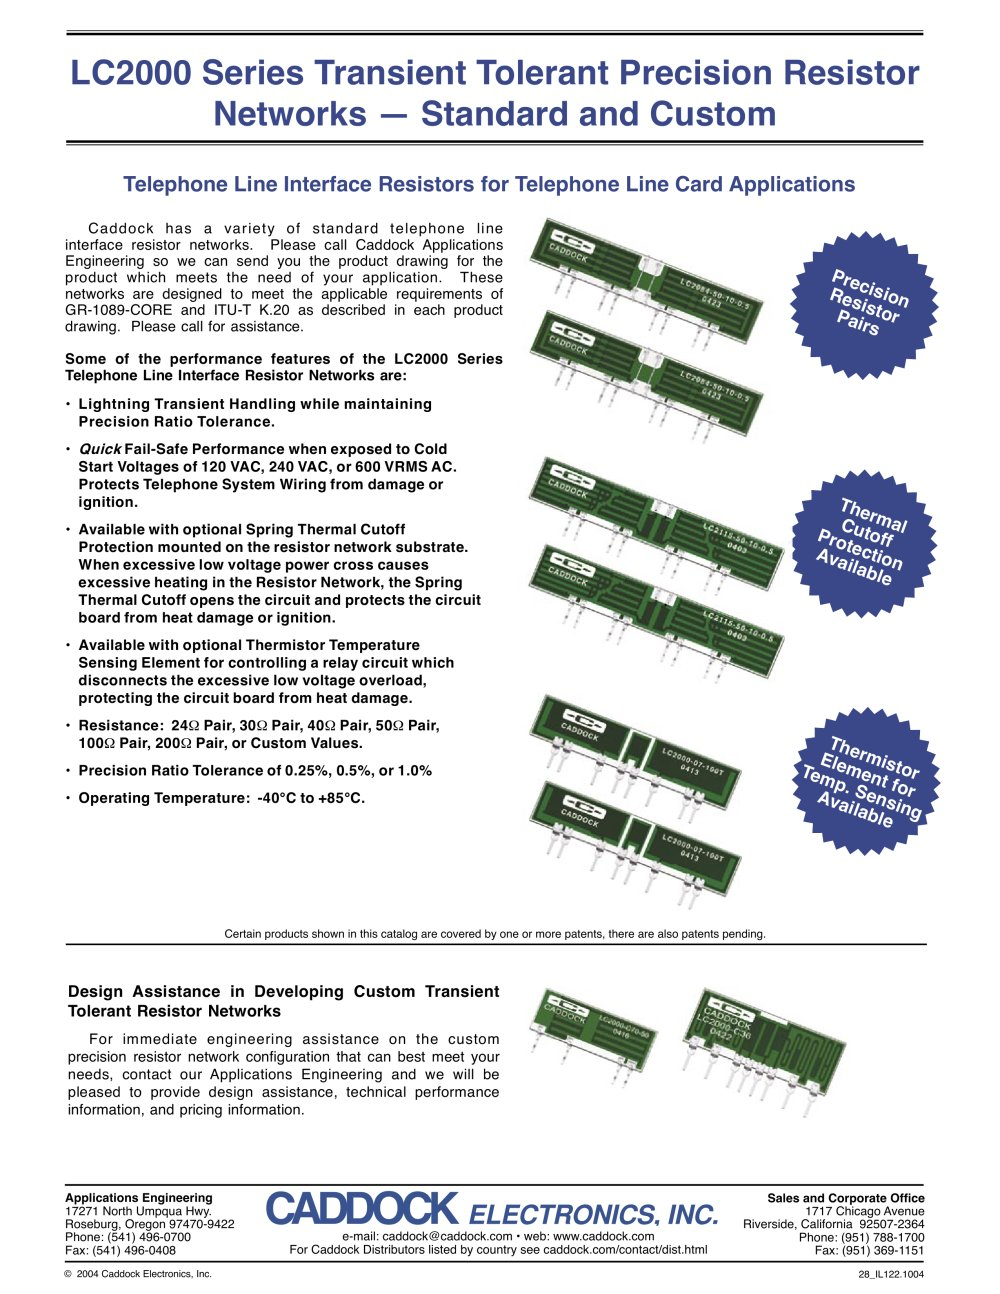 Lc2000 Series Transient Tolerant Precision Resistor Networks Opens In A Circuit Custom And Standard 1 Pages